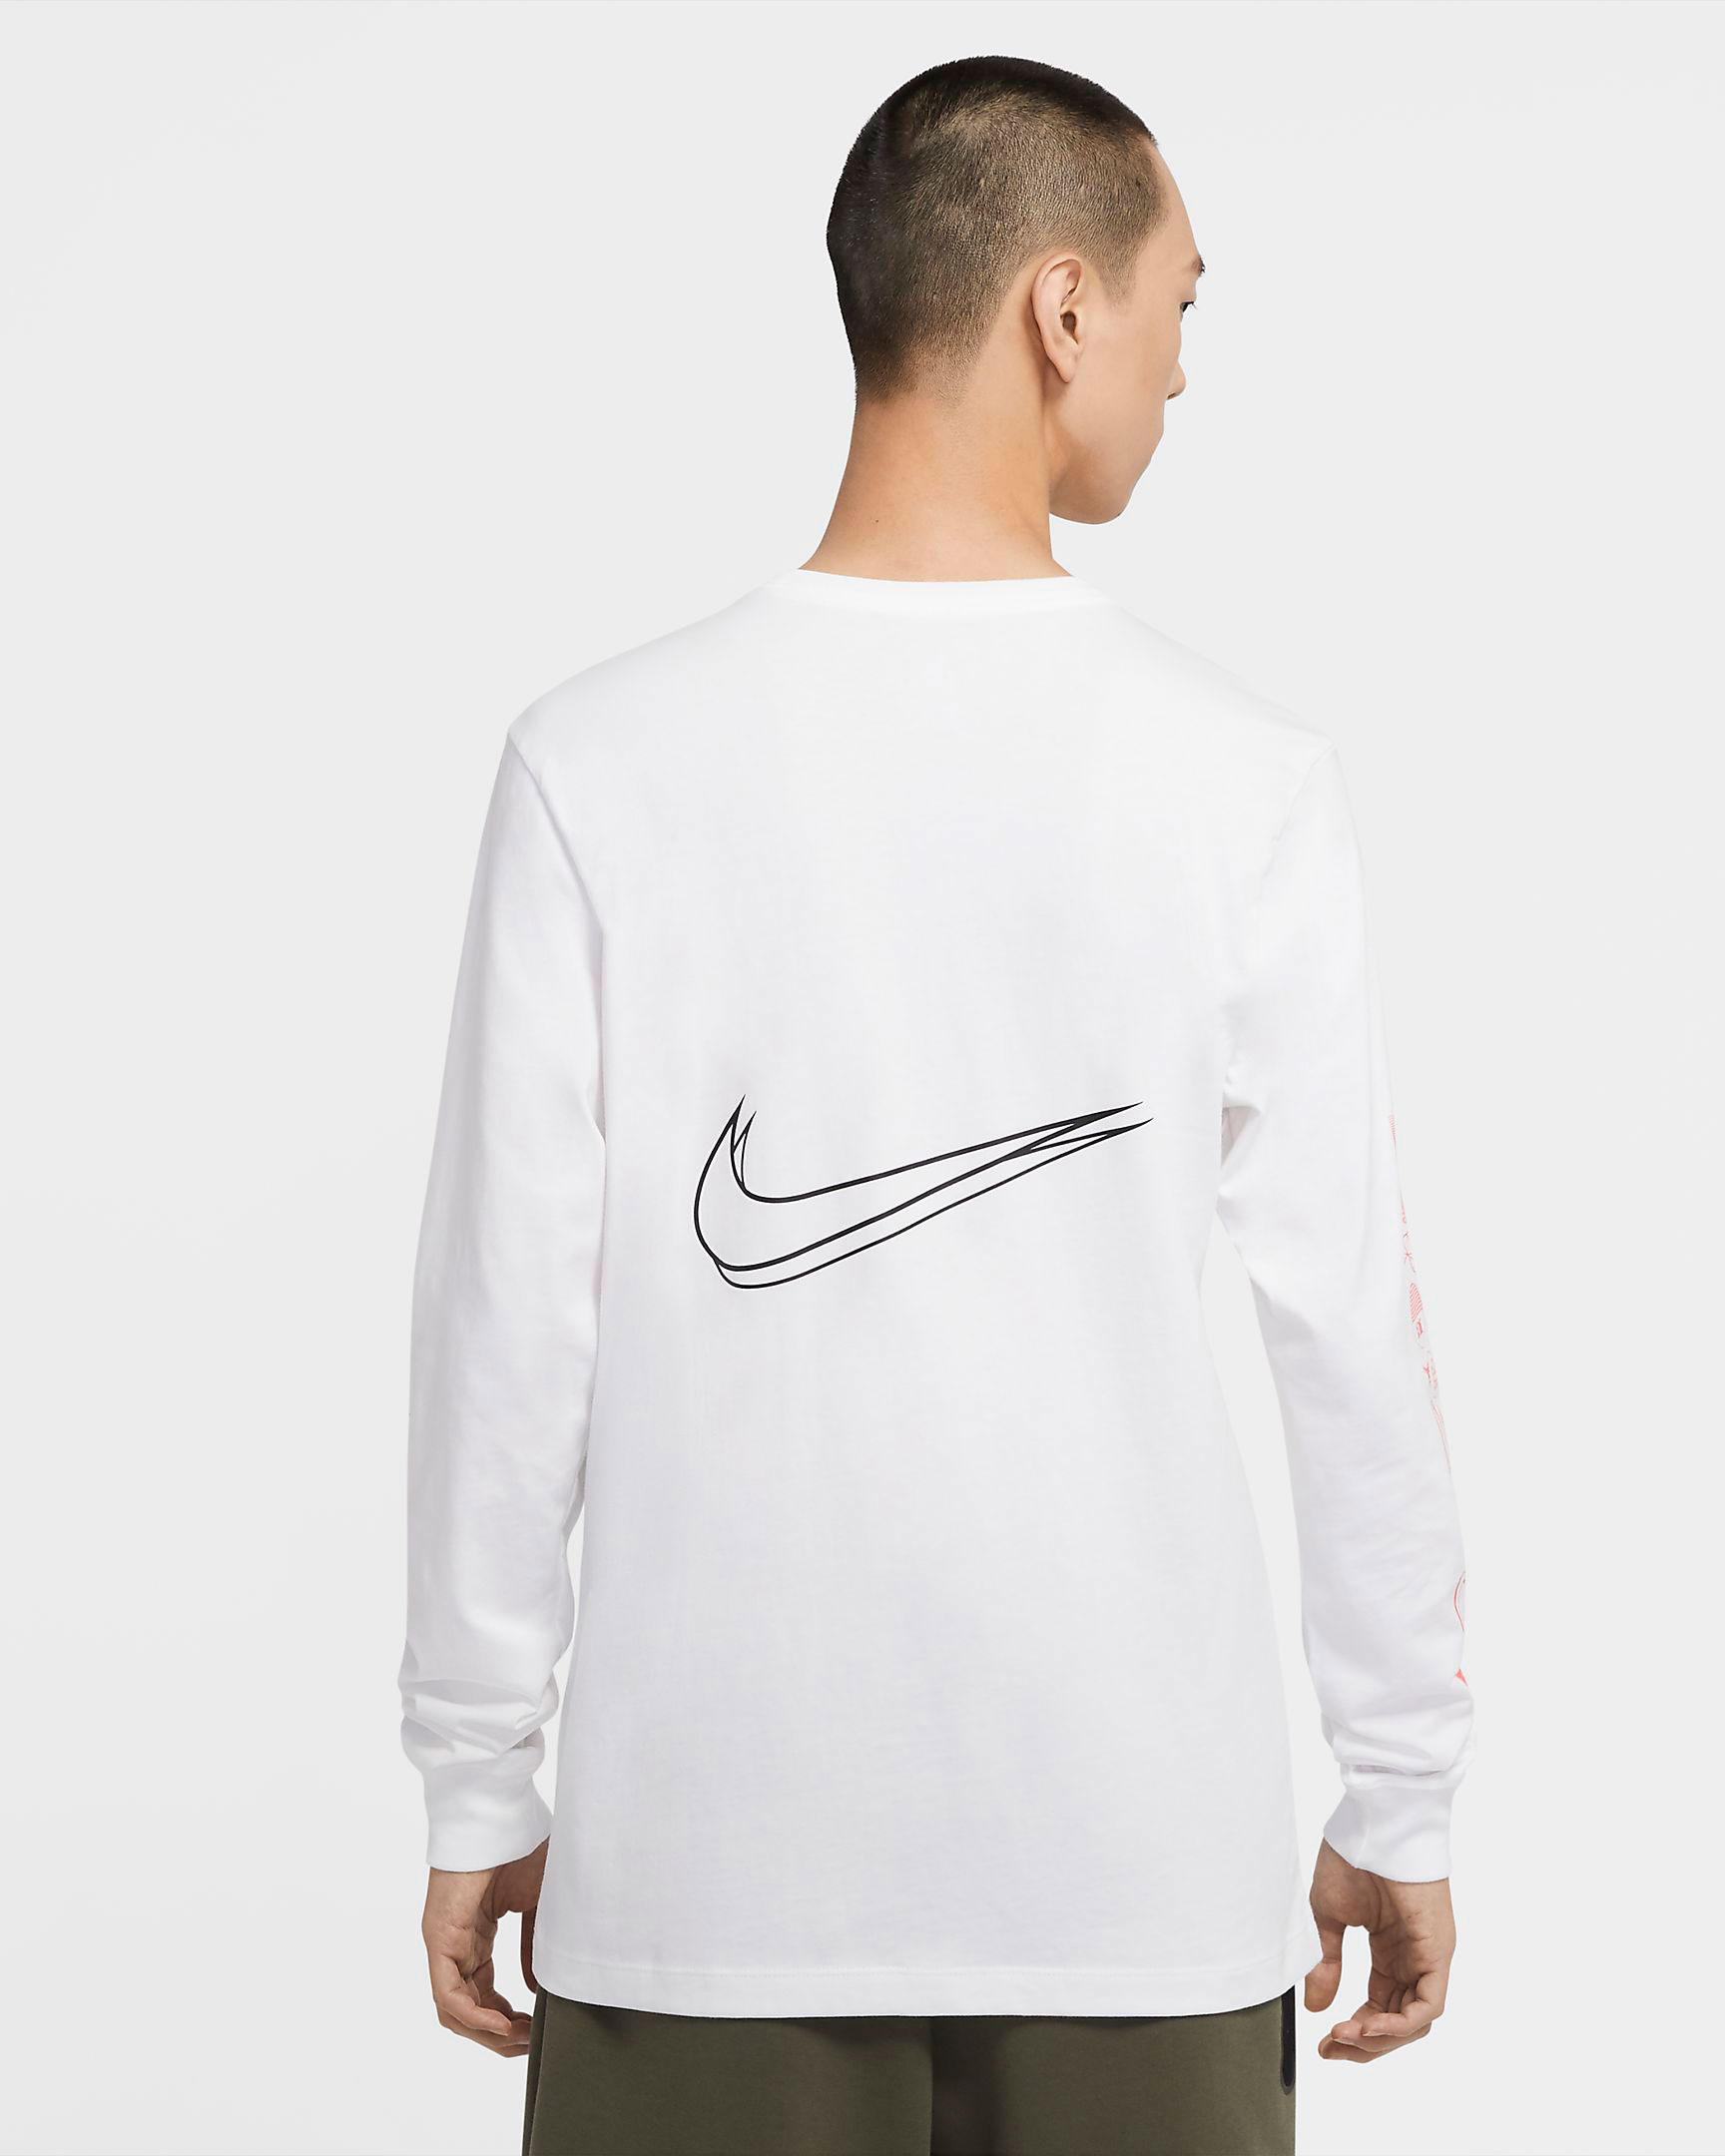 nike-worldwide-long-sleeve-shirt-white-2